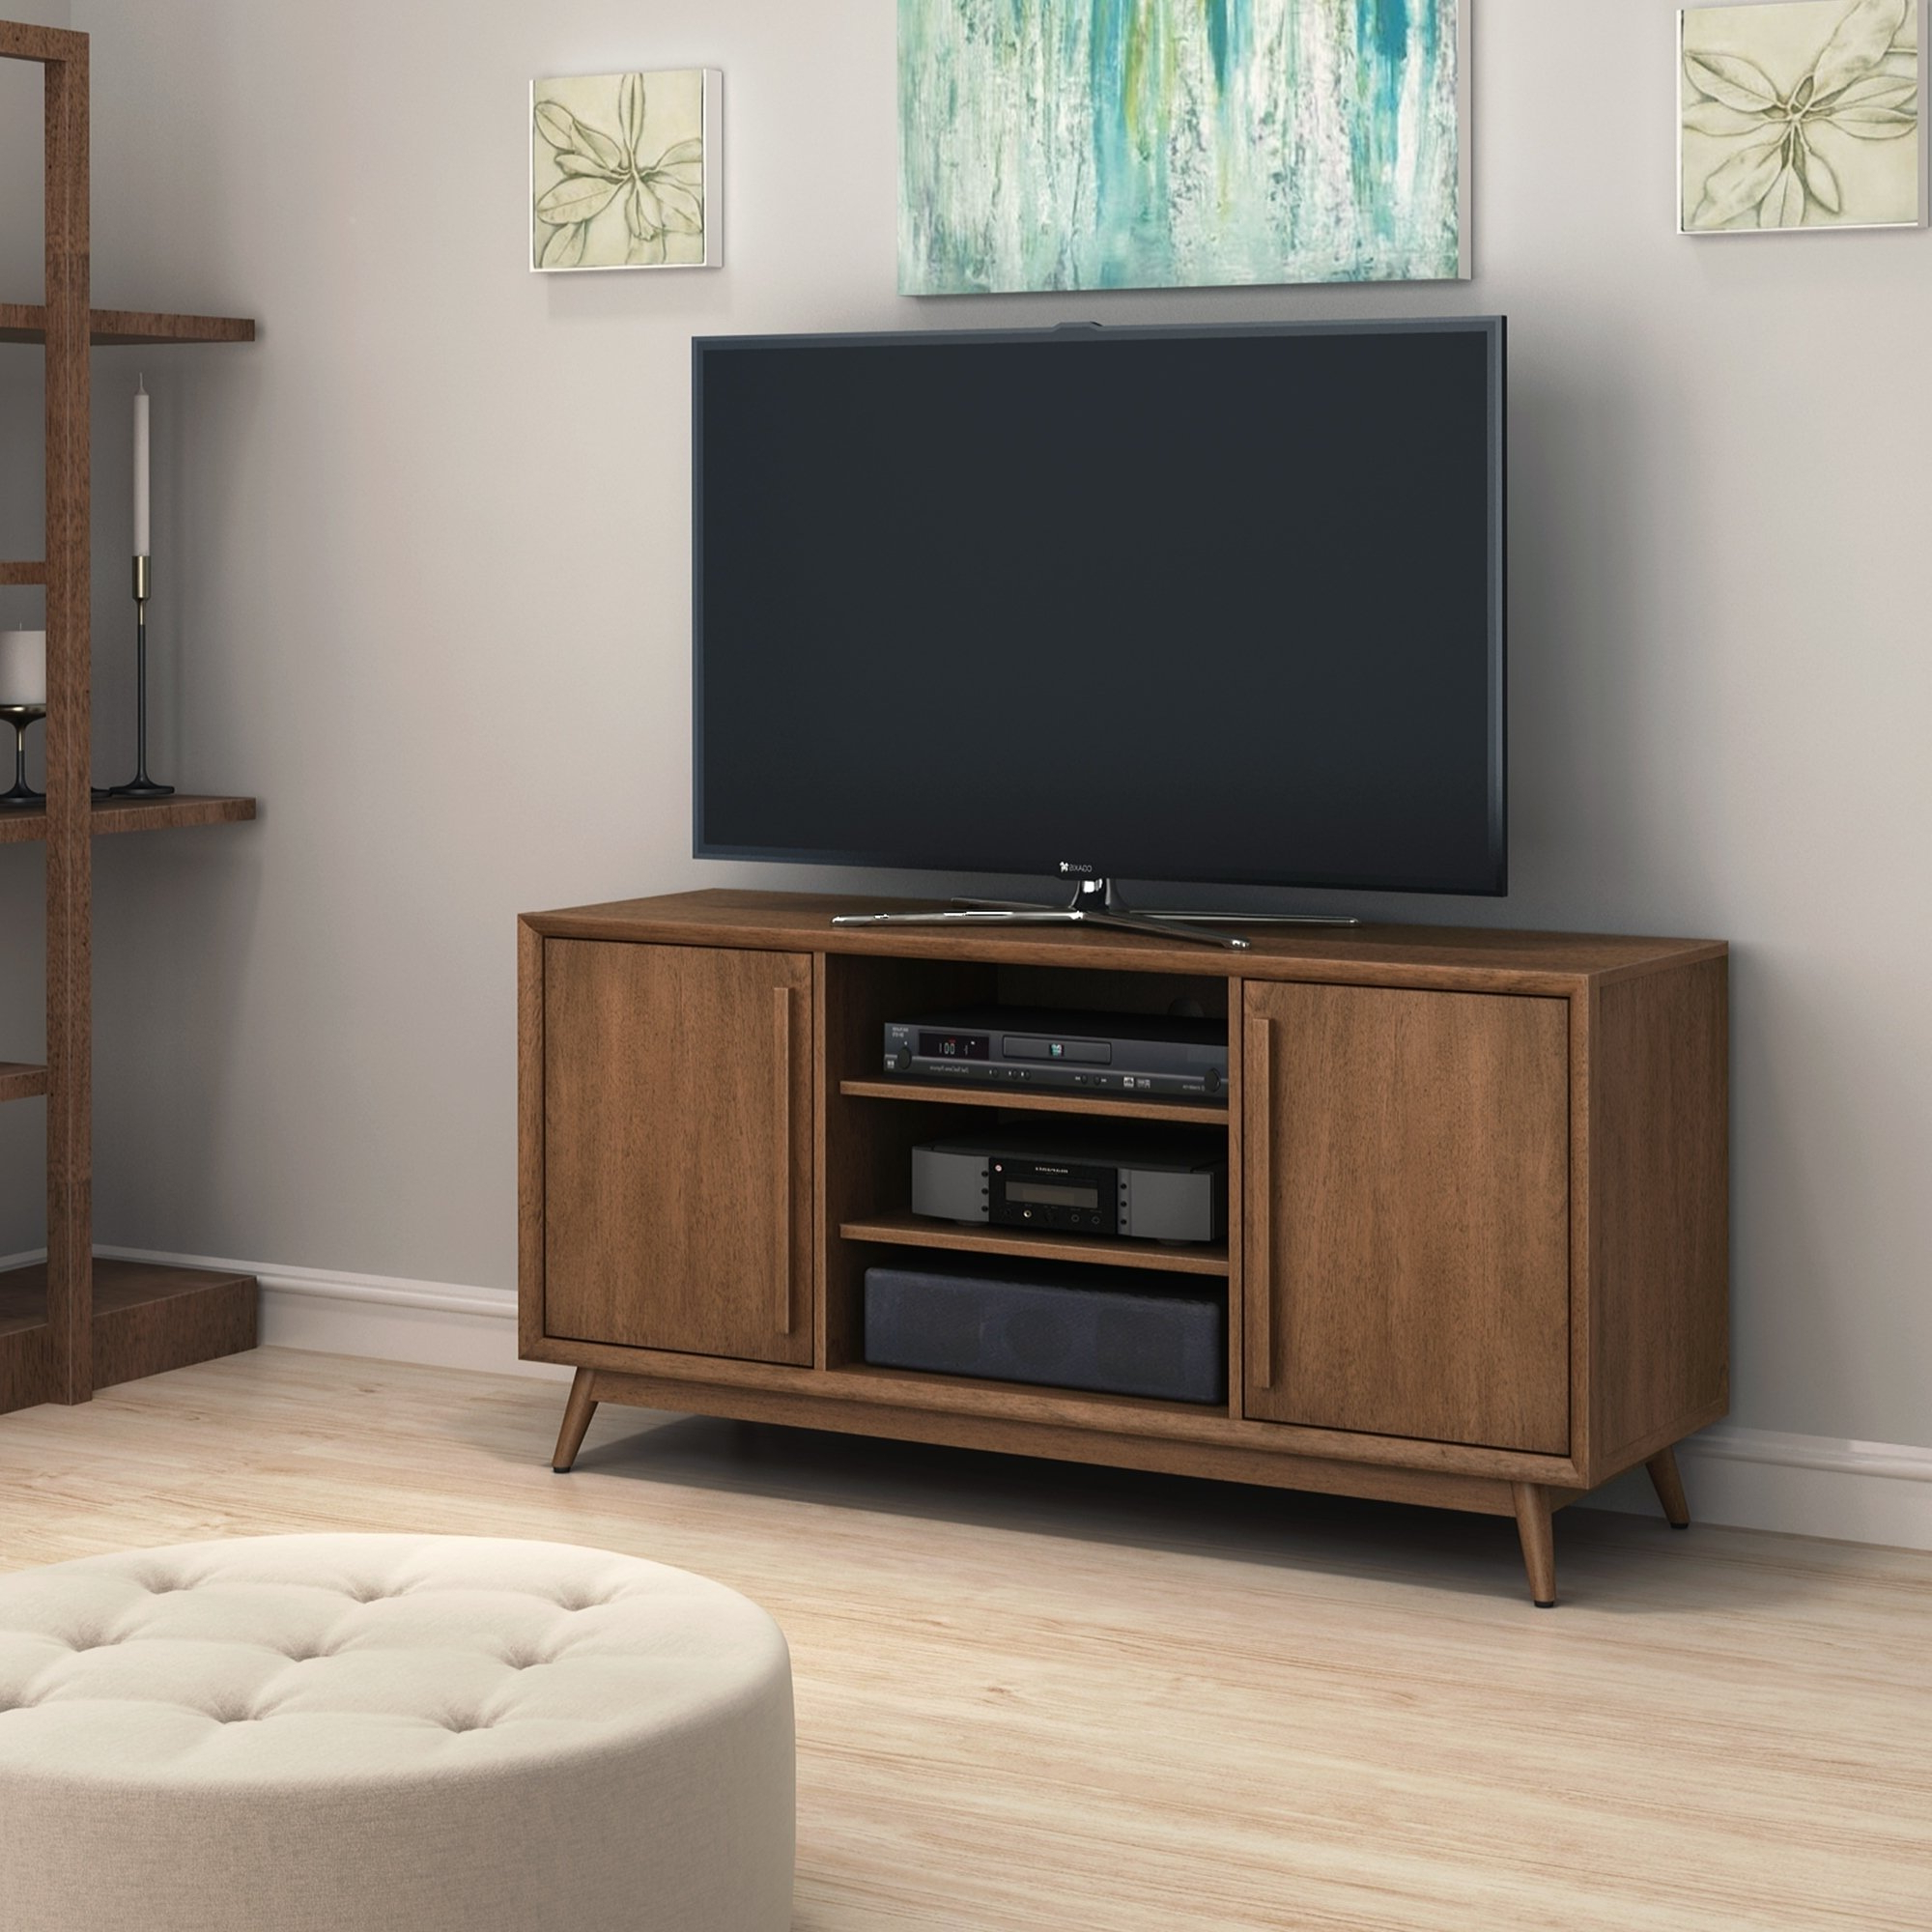 Widely Used Canyon 54 Inch Tv Stands For Shop Leawood Tv Stand For Tvs Up To 60 Inches, Broadwalk Birch (View 20 of 20)